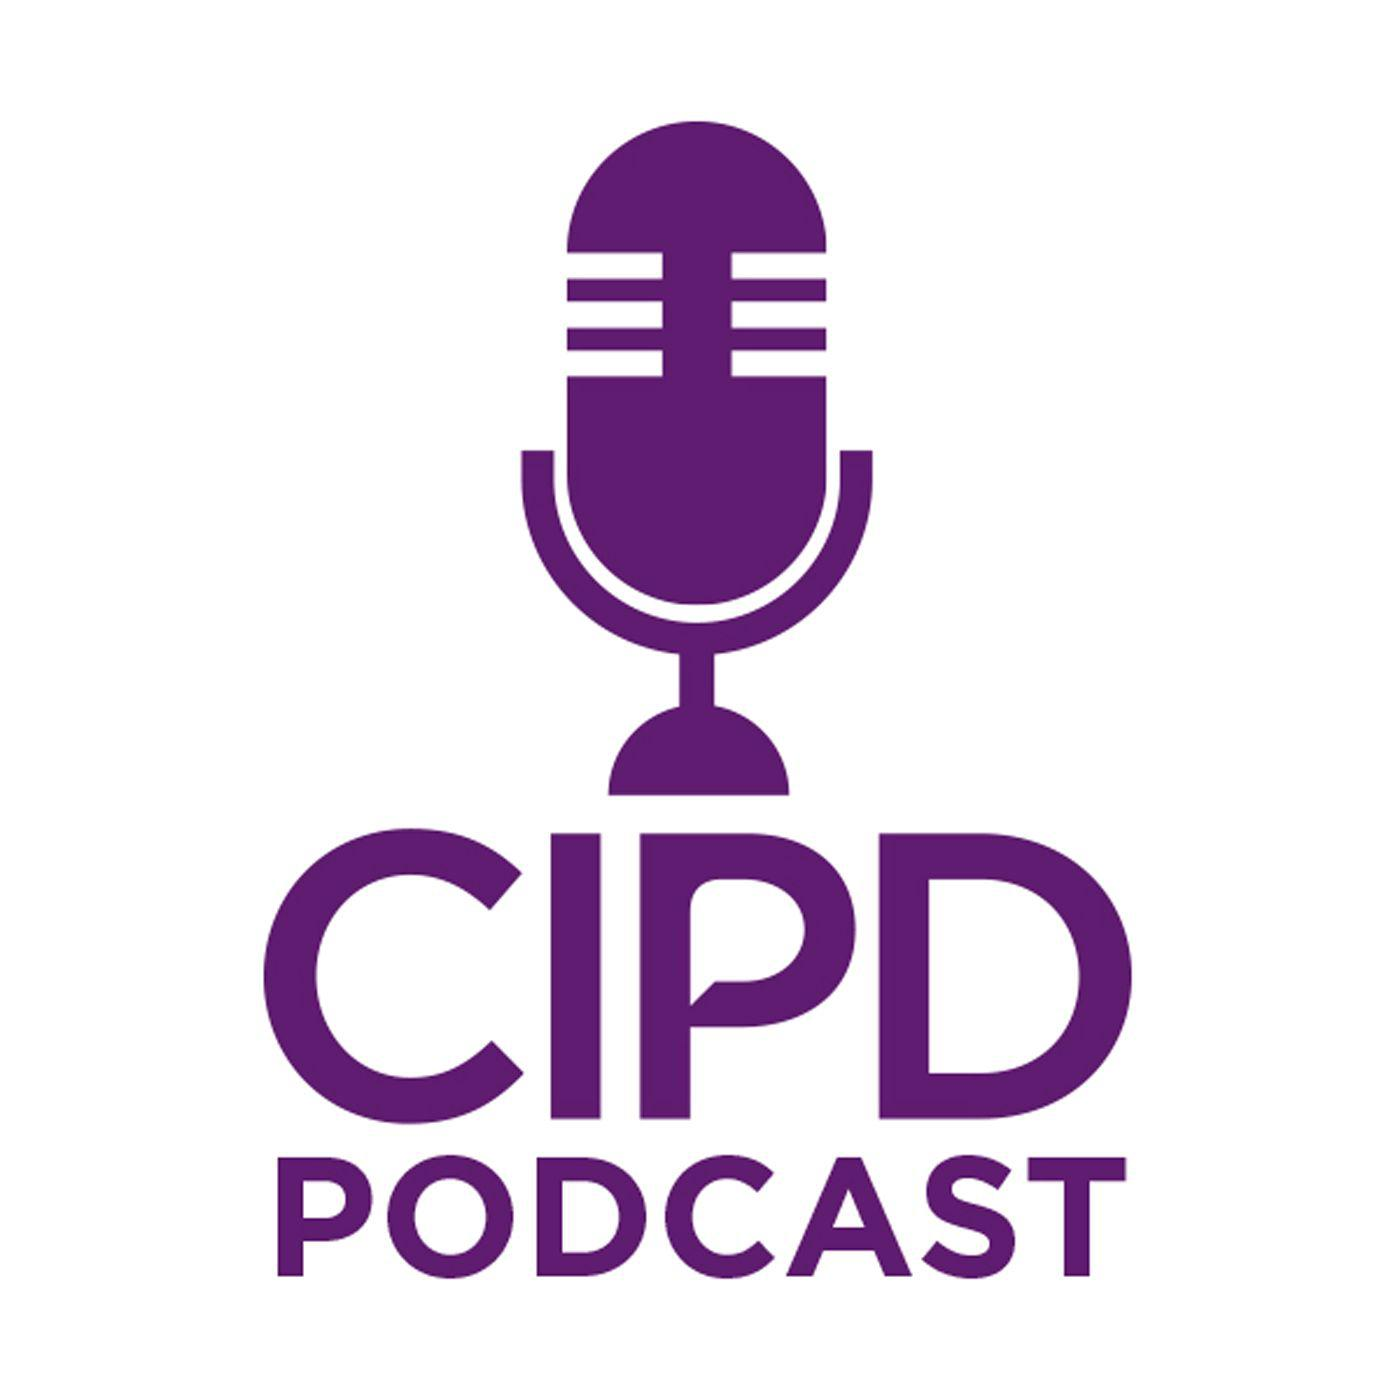 CIPD Podcast